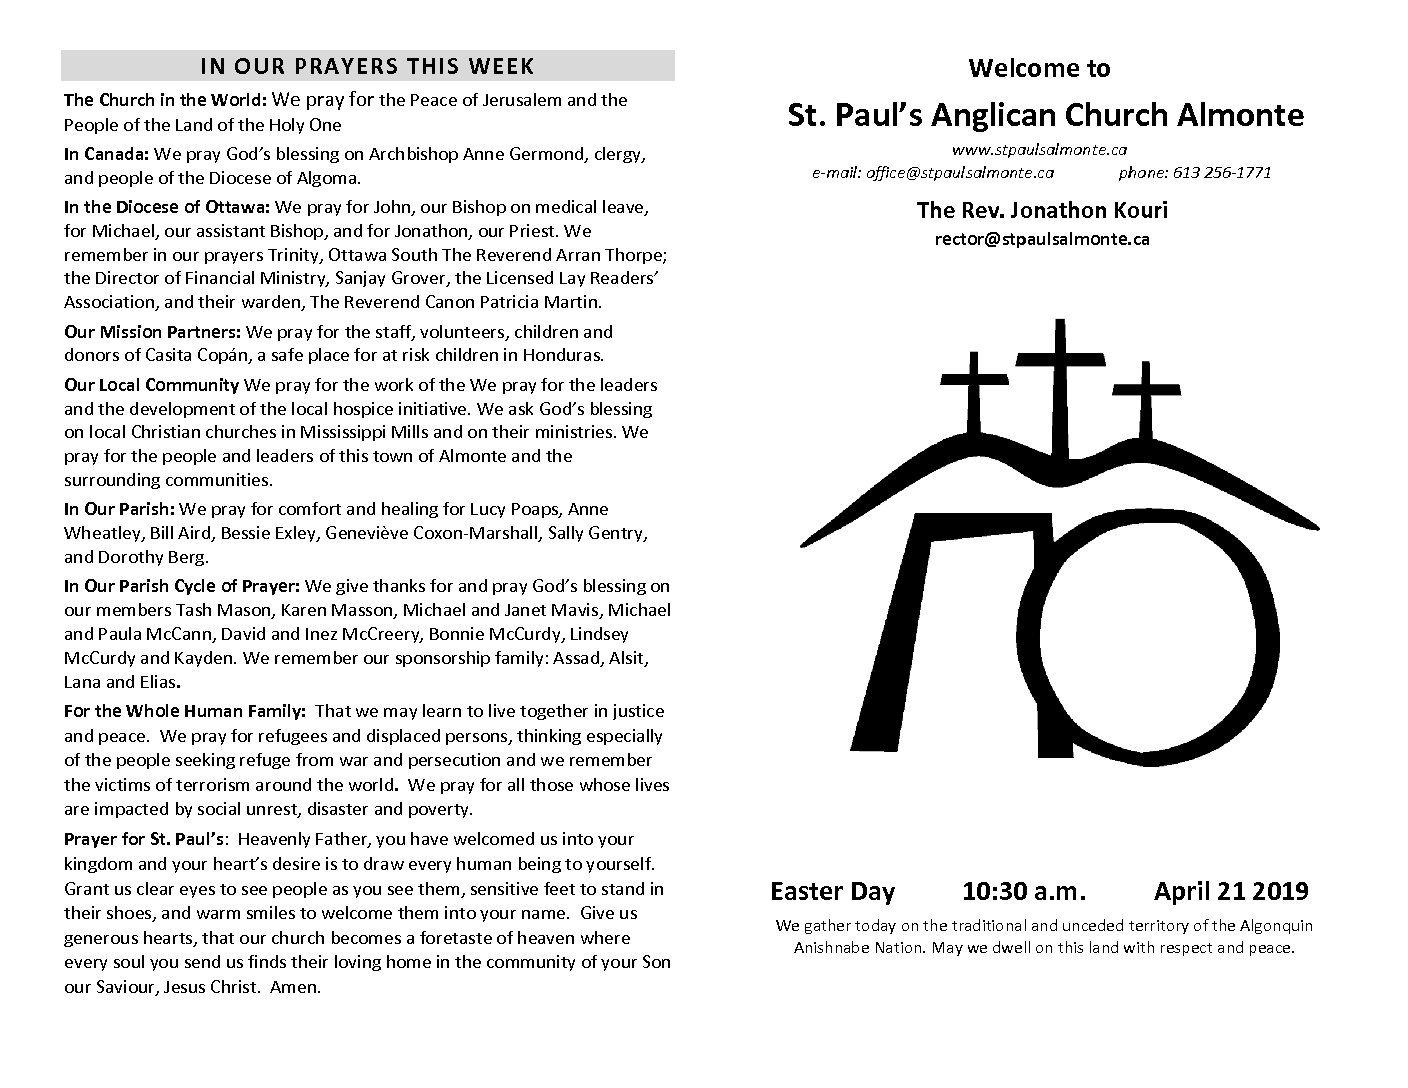 Bulletin Apr 21 2019 EASTER